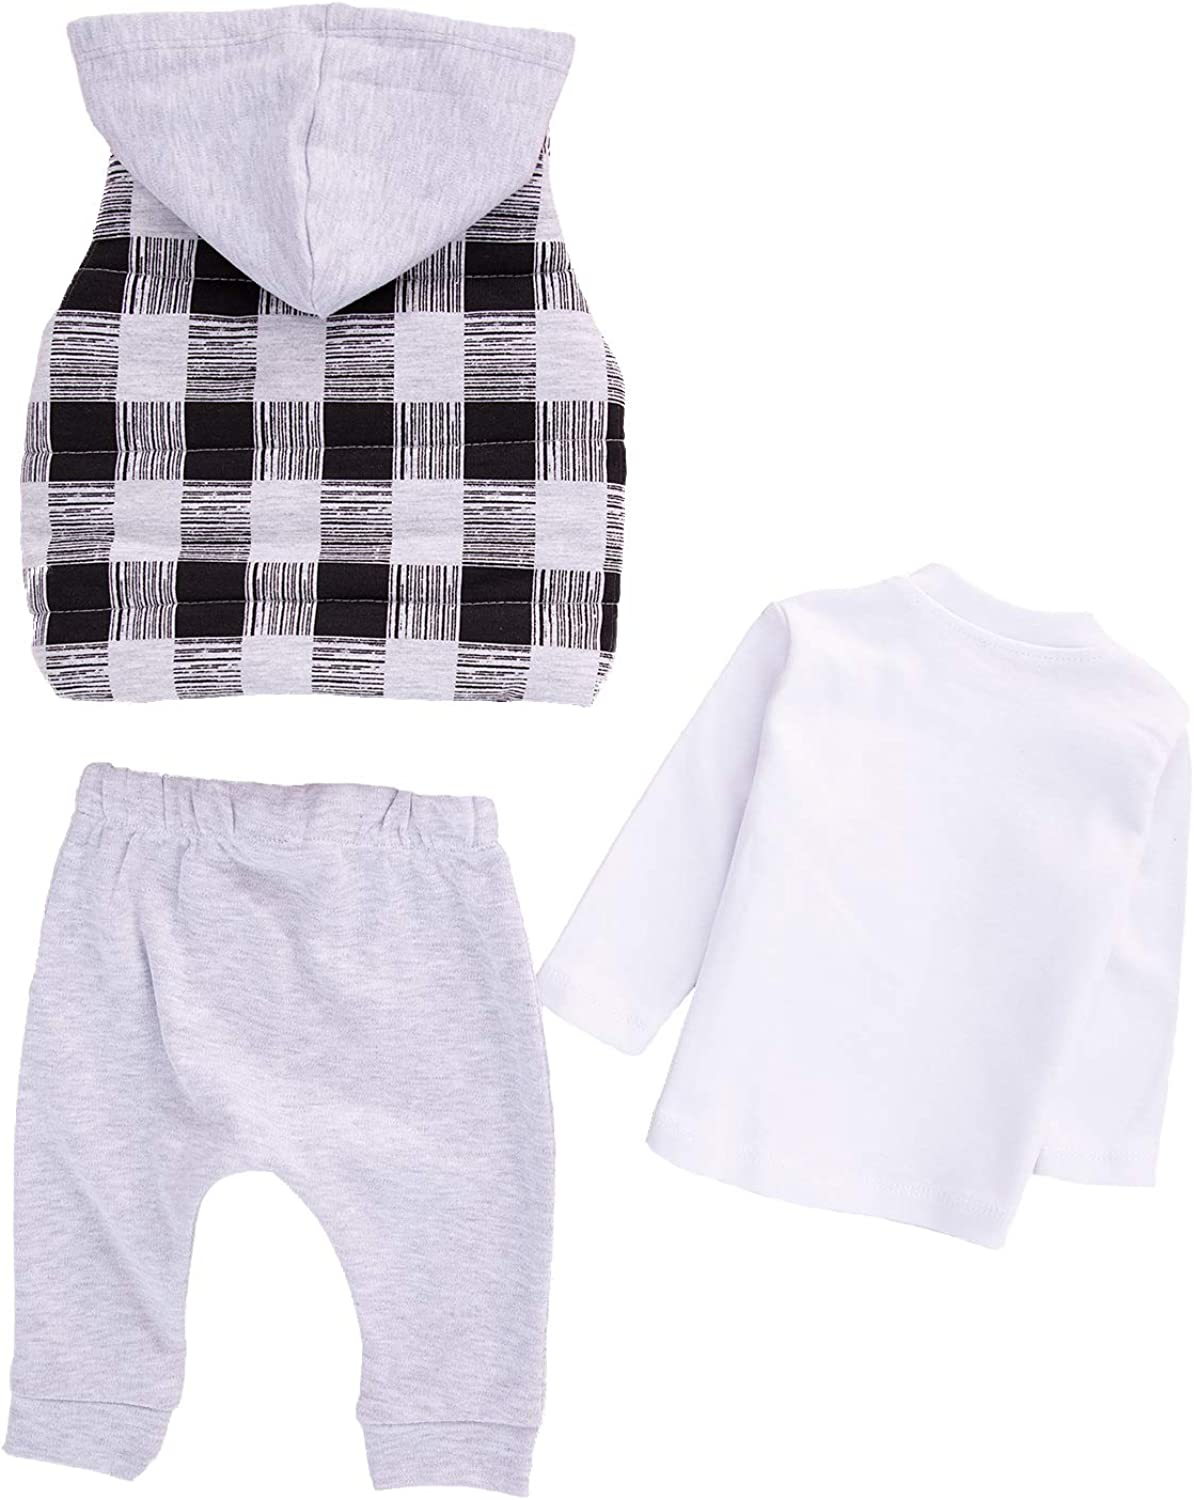 Hippil Baby Newborn Girls or Boys Baby Clothes 3-Piece Outerwear Set with Vest T-Shirt with Sweatpant